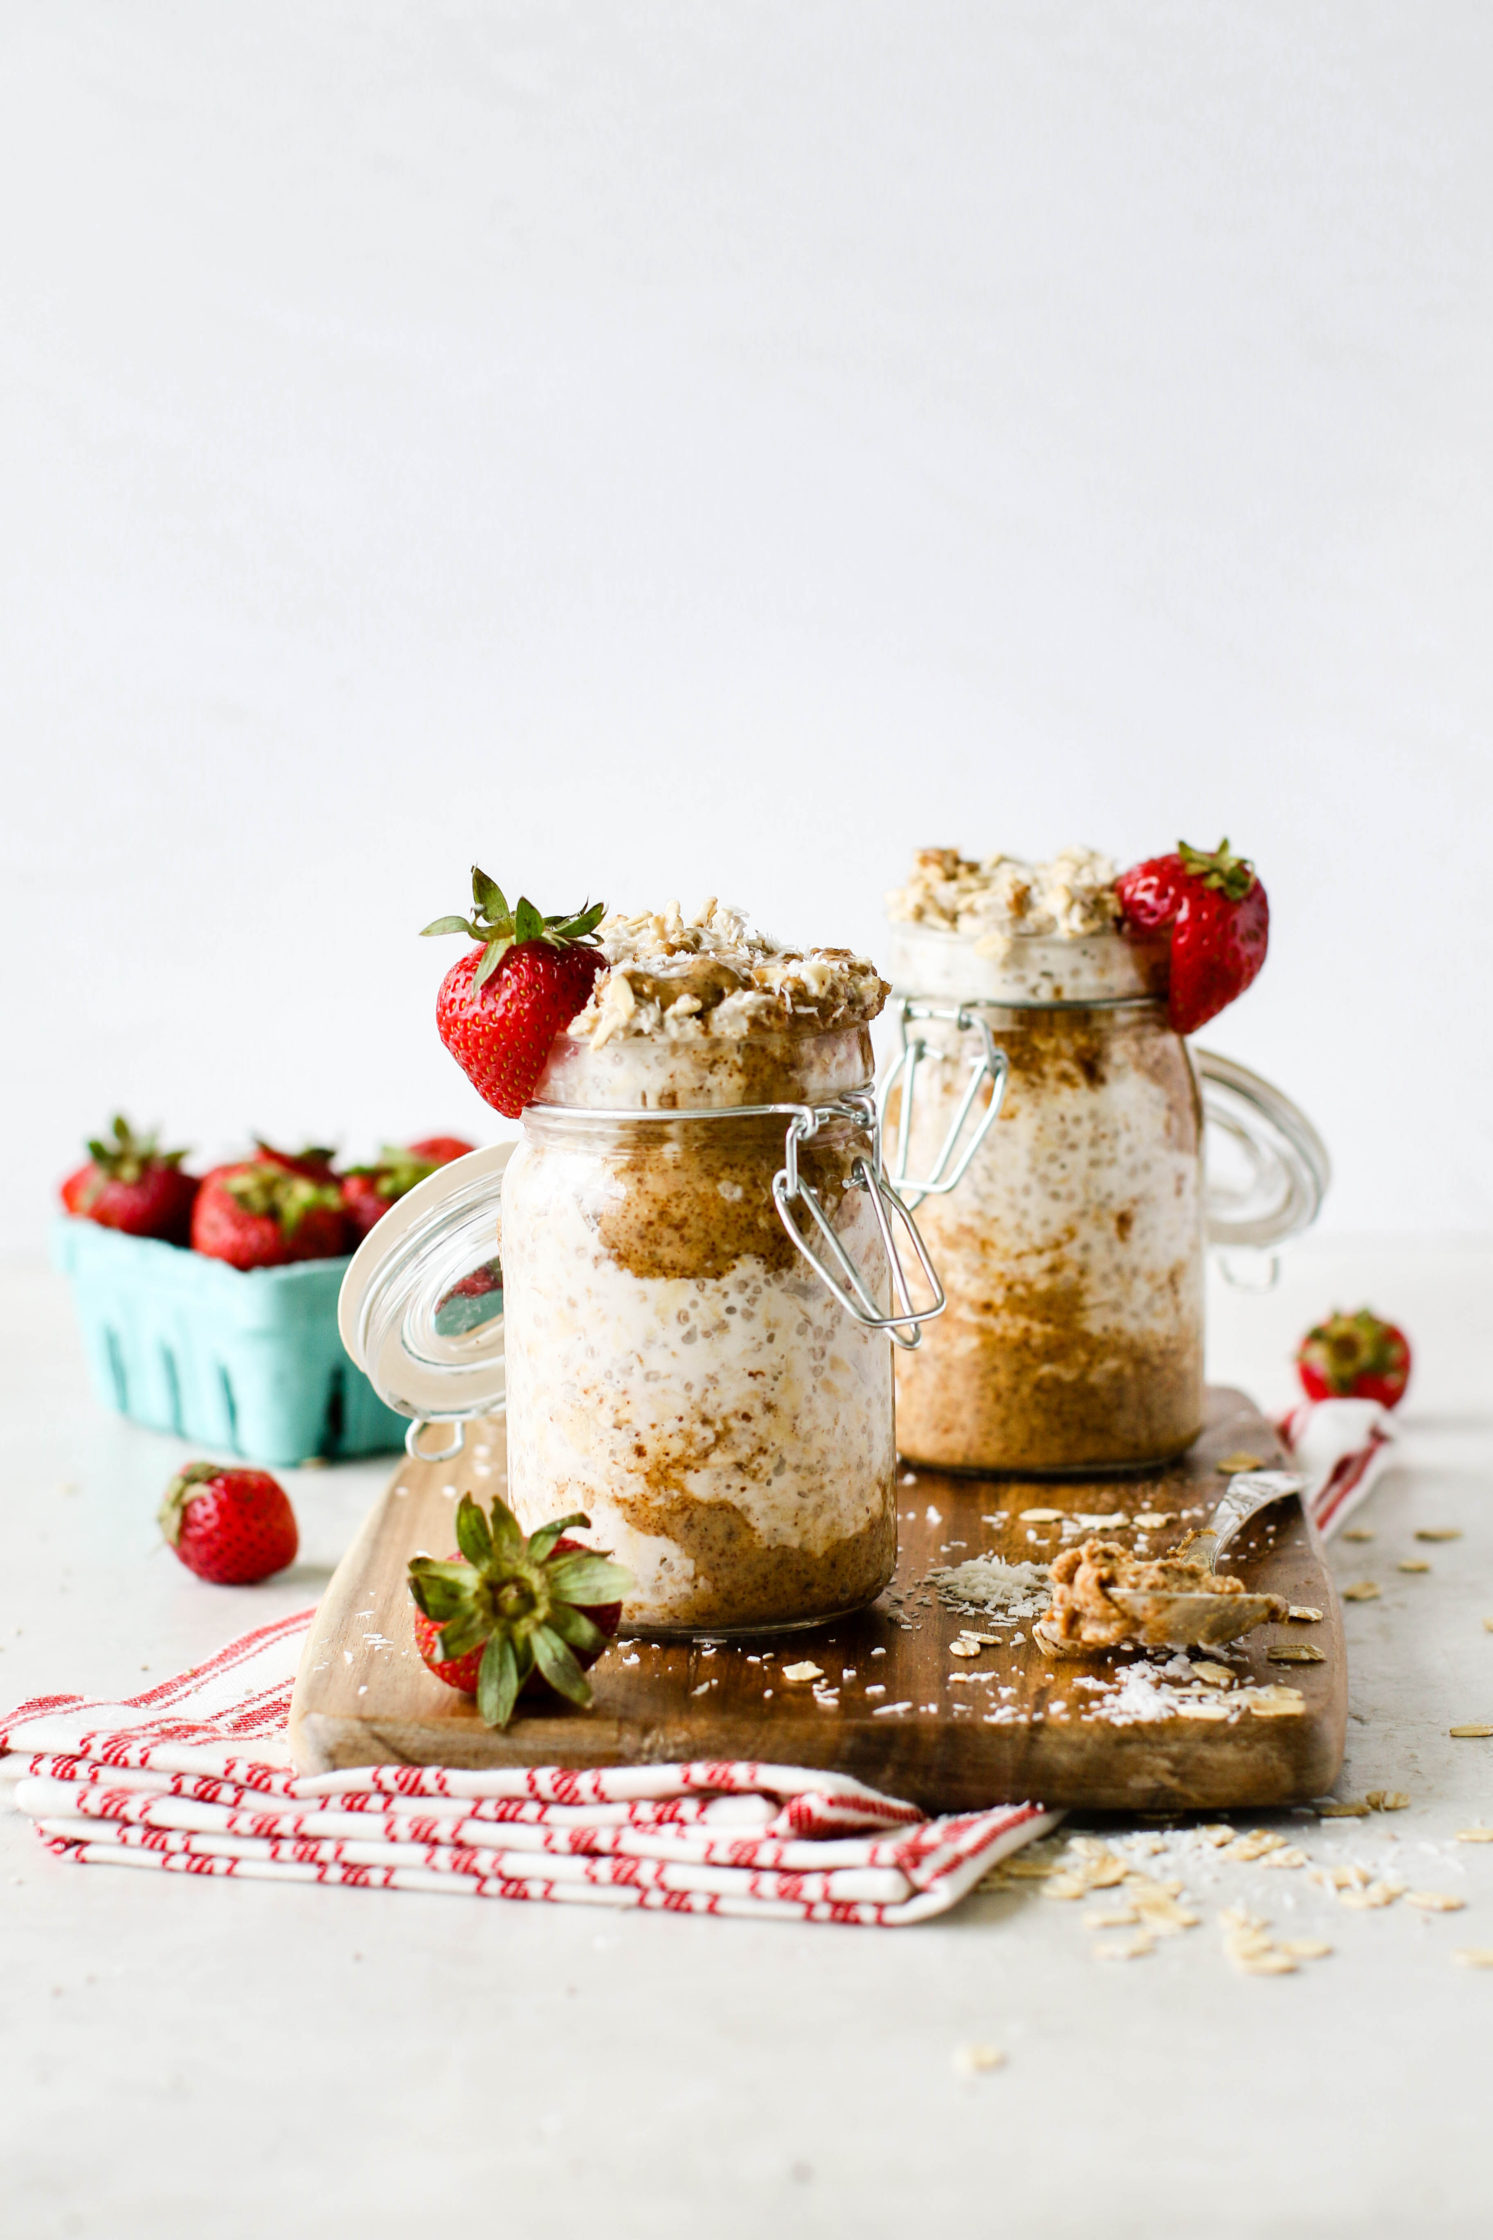 Strawberry Coconut Almond Butter Overnight Oats